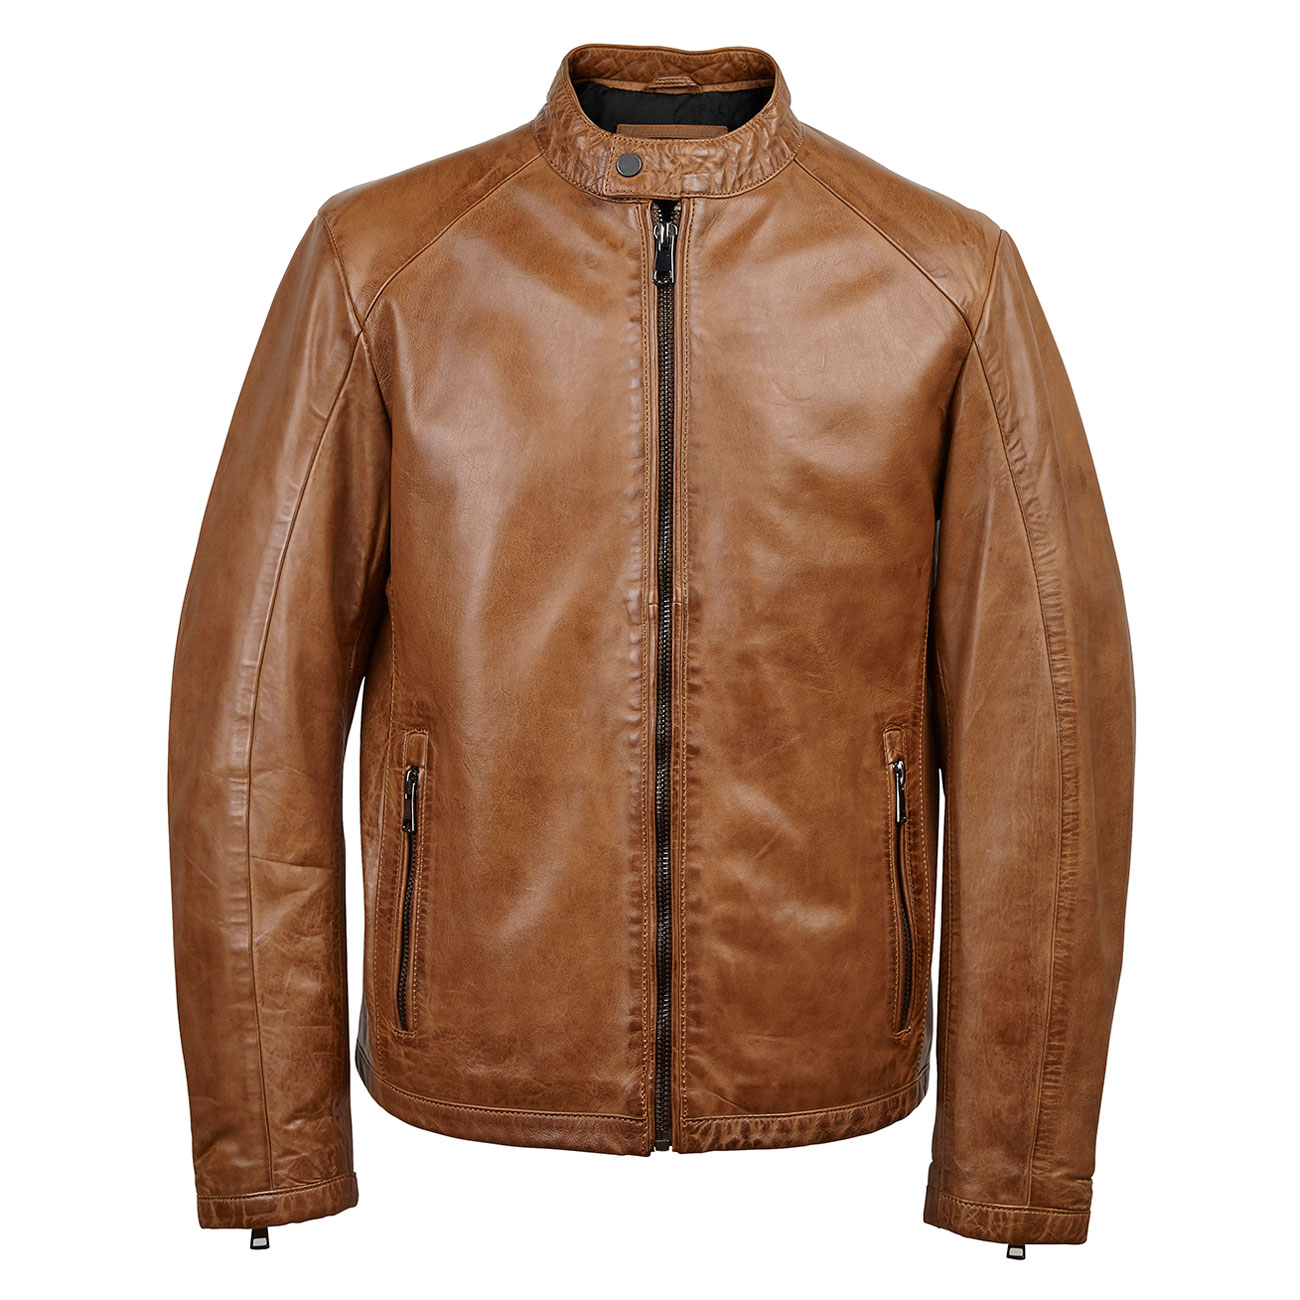 Gents Leather jacket Tan Luke